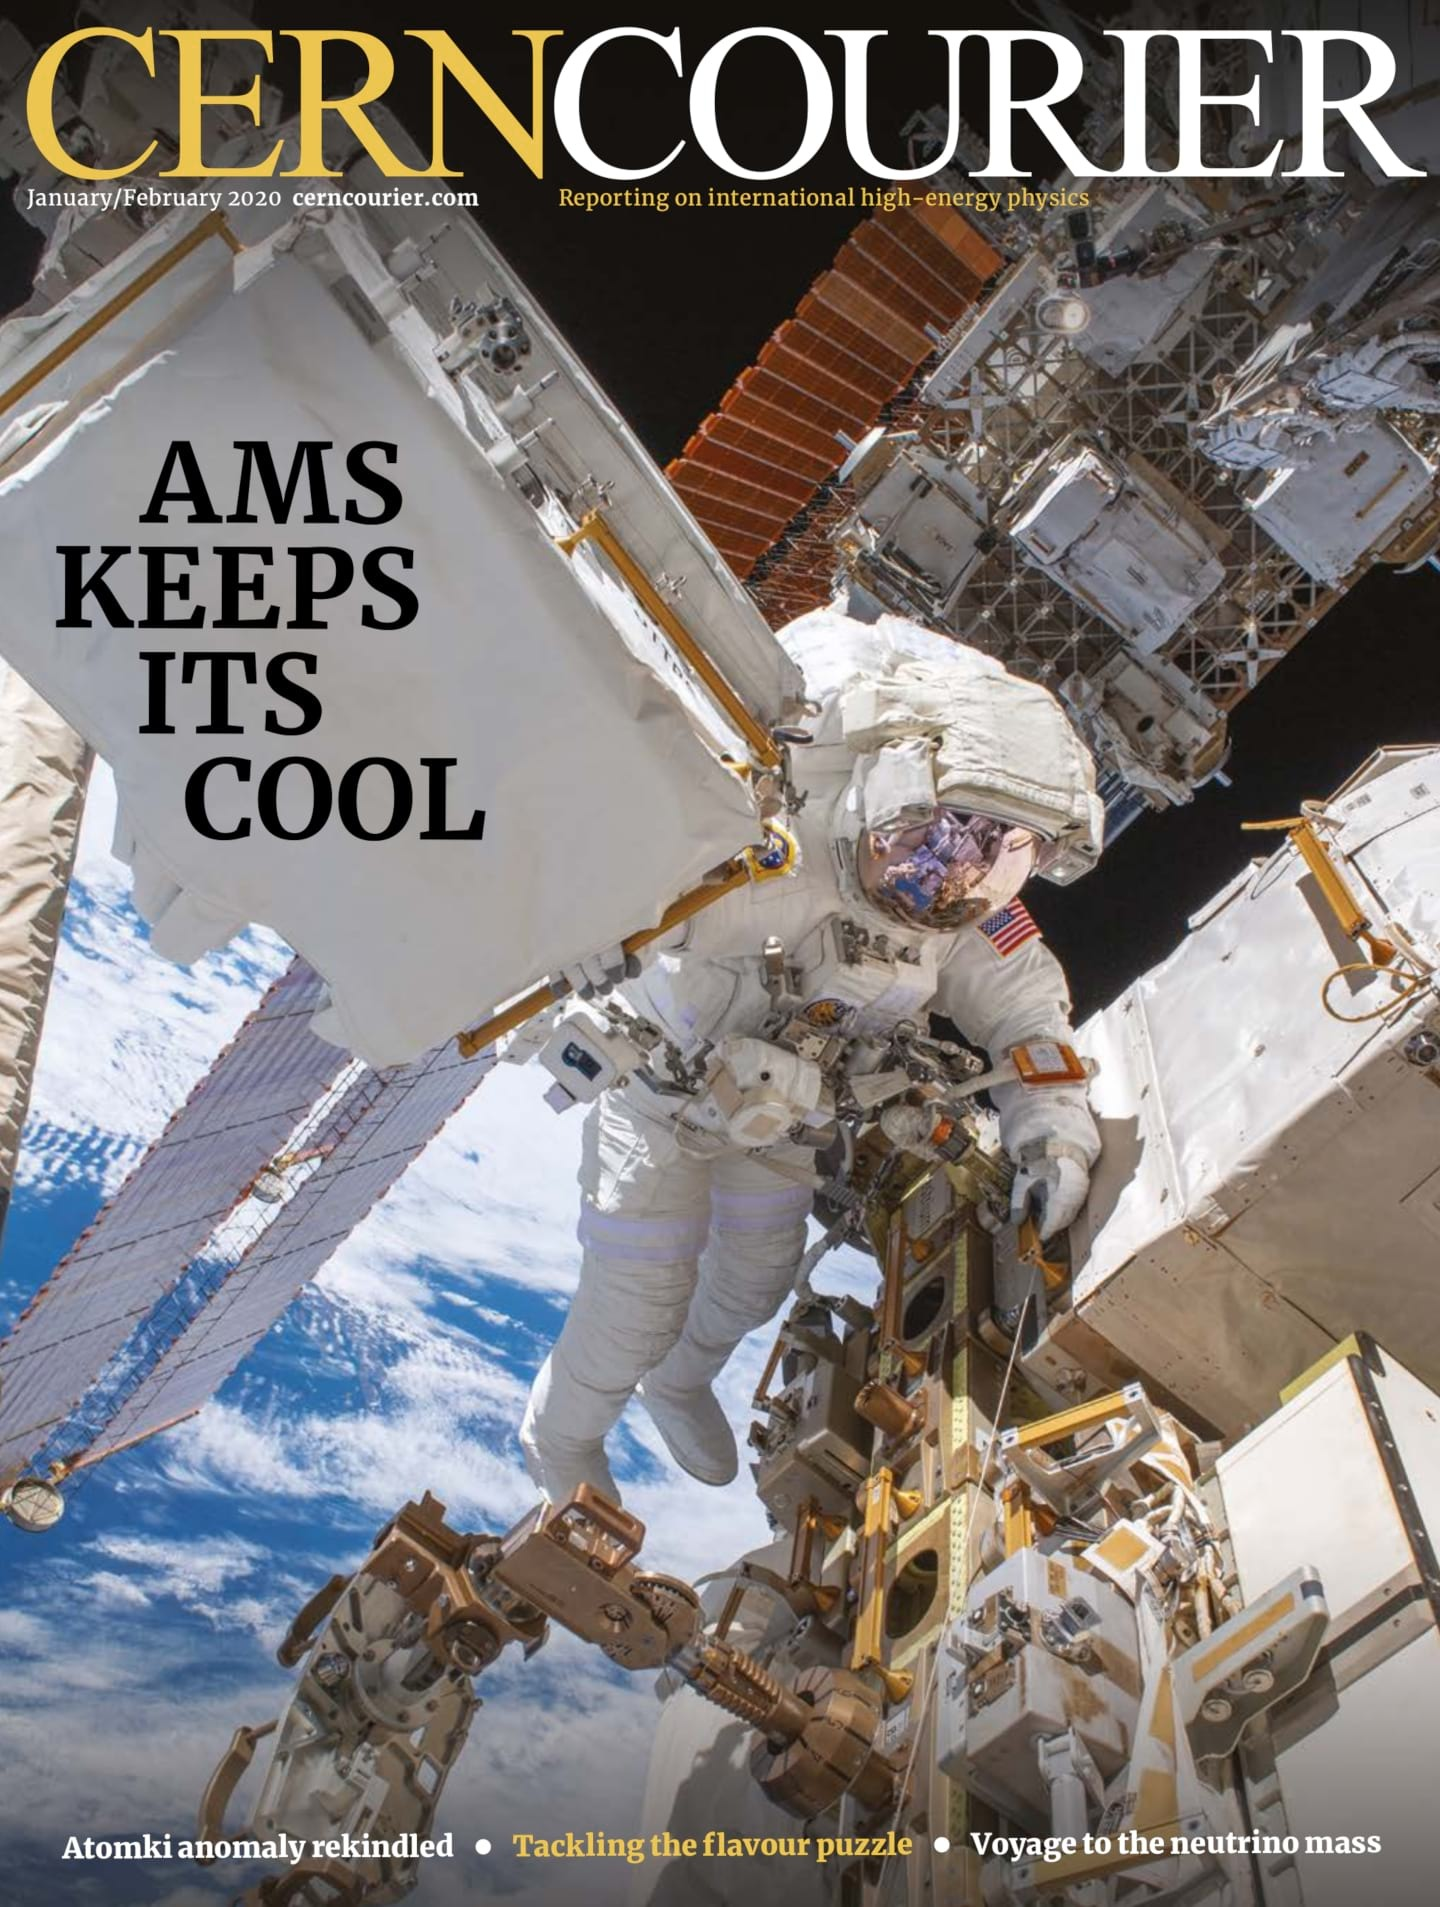 NASA astronaut Drew Morgan performing a spacewalk on the ISS